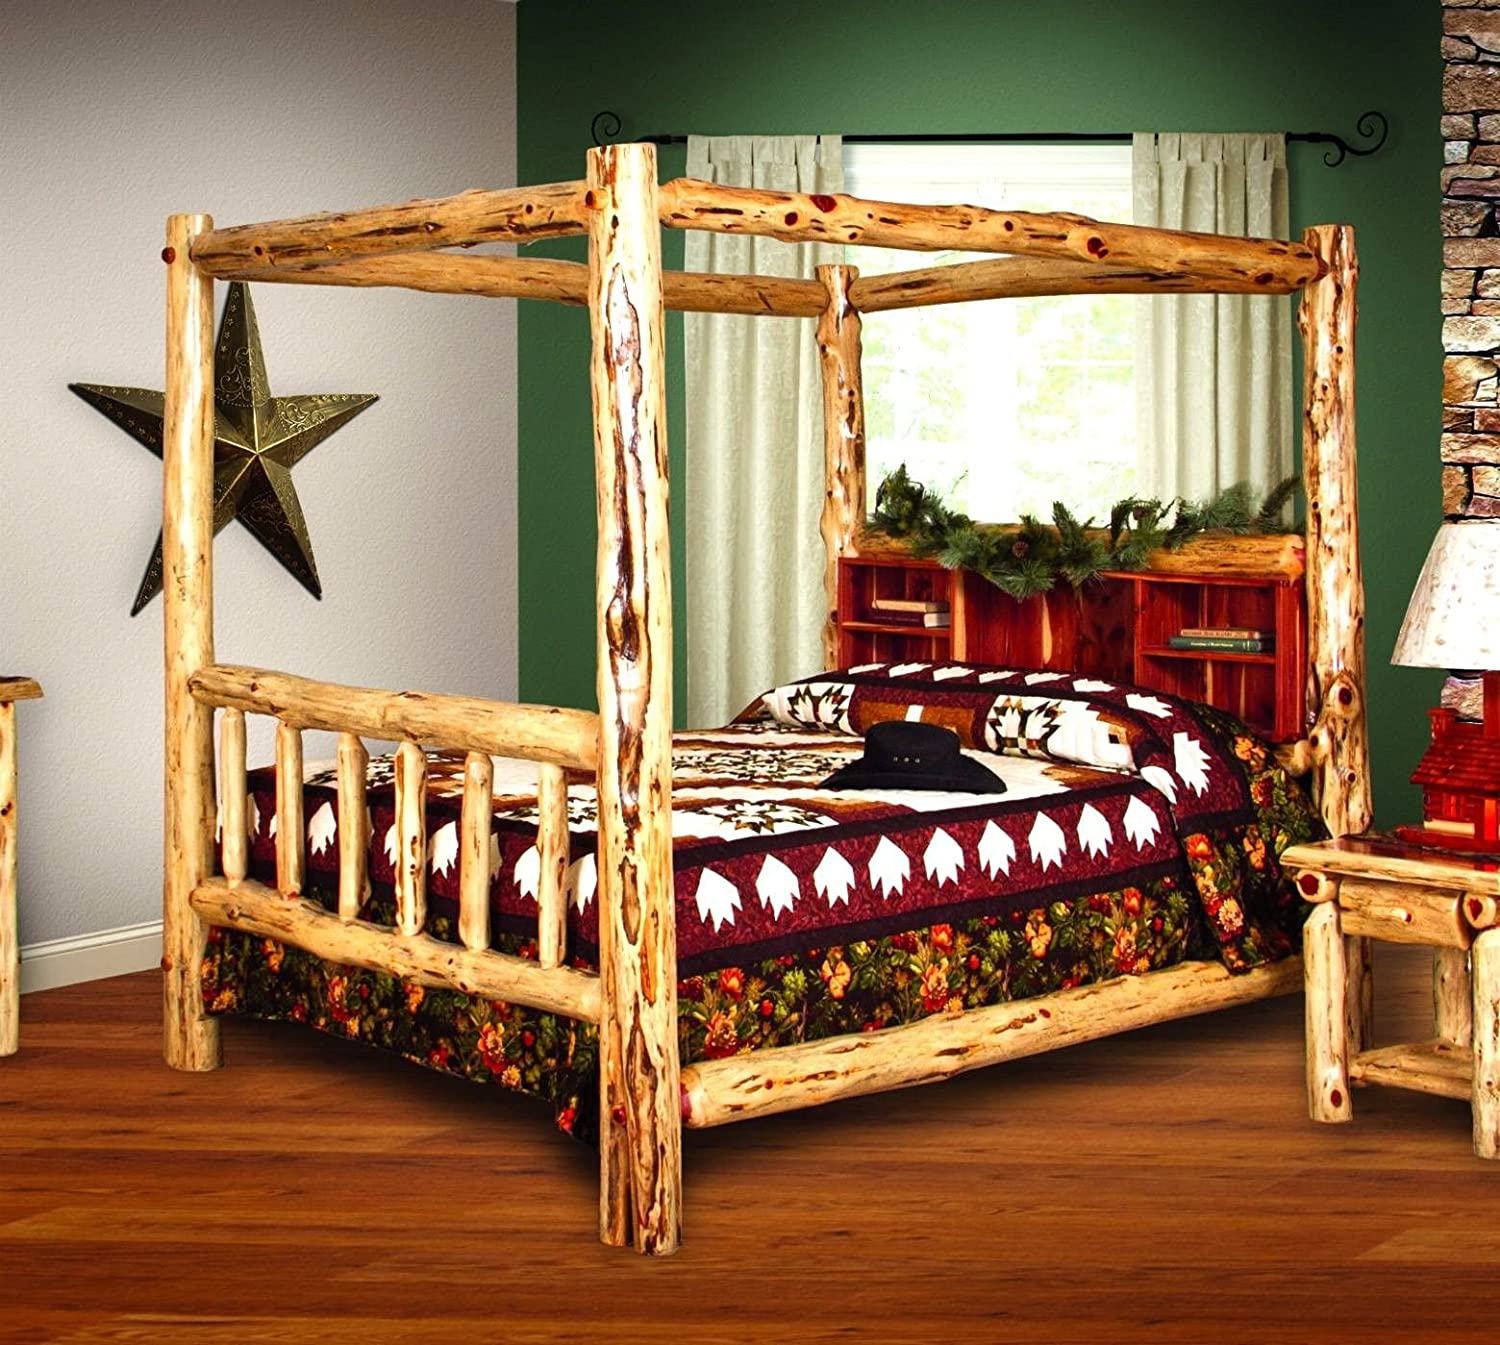 Amazon Com Rustic Red Cedar Log Bed King Size Canopy Bed Amish